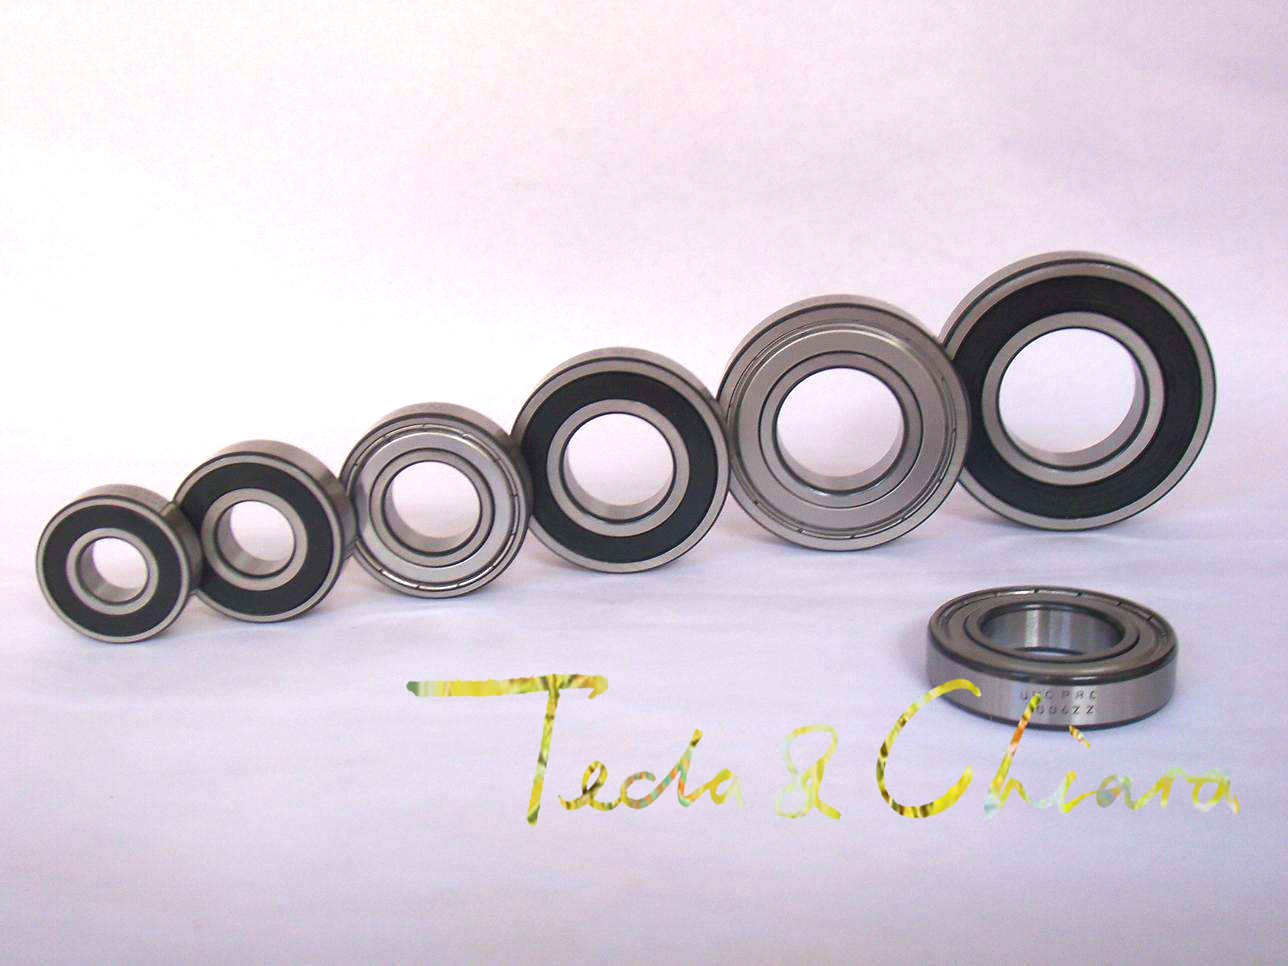 R168 R168ZZ R168RS R168-2Z R168Z R168-2RS ZZ RS RZ 2RZ Deep Groove Ball Bearings 6.35 x 9.525 x 3.175mm 1/4 x 3/8 x 1/8 kuyomens 4 pcs man t shirts tees shirt homme new arrival summer short sleeve men s t shirt male tshirts camiseta t shirt men